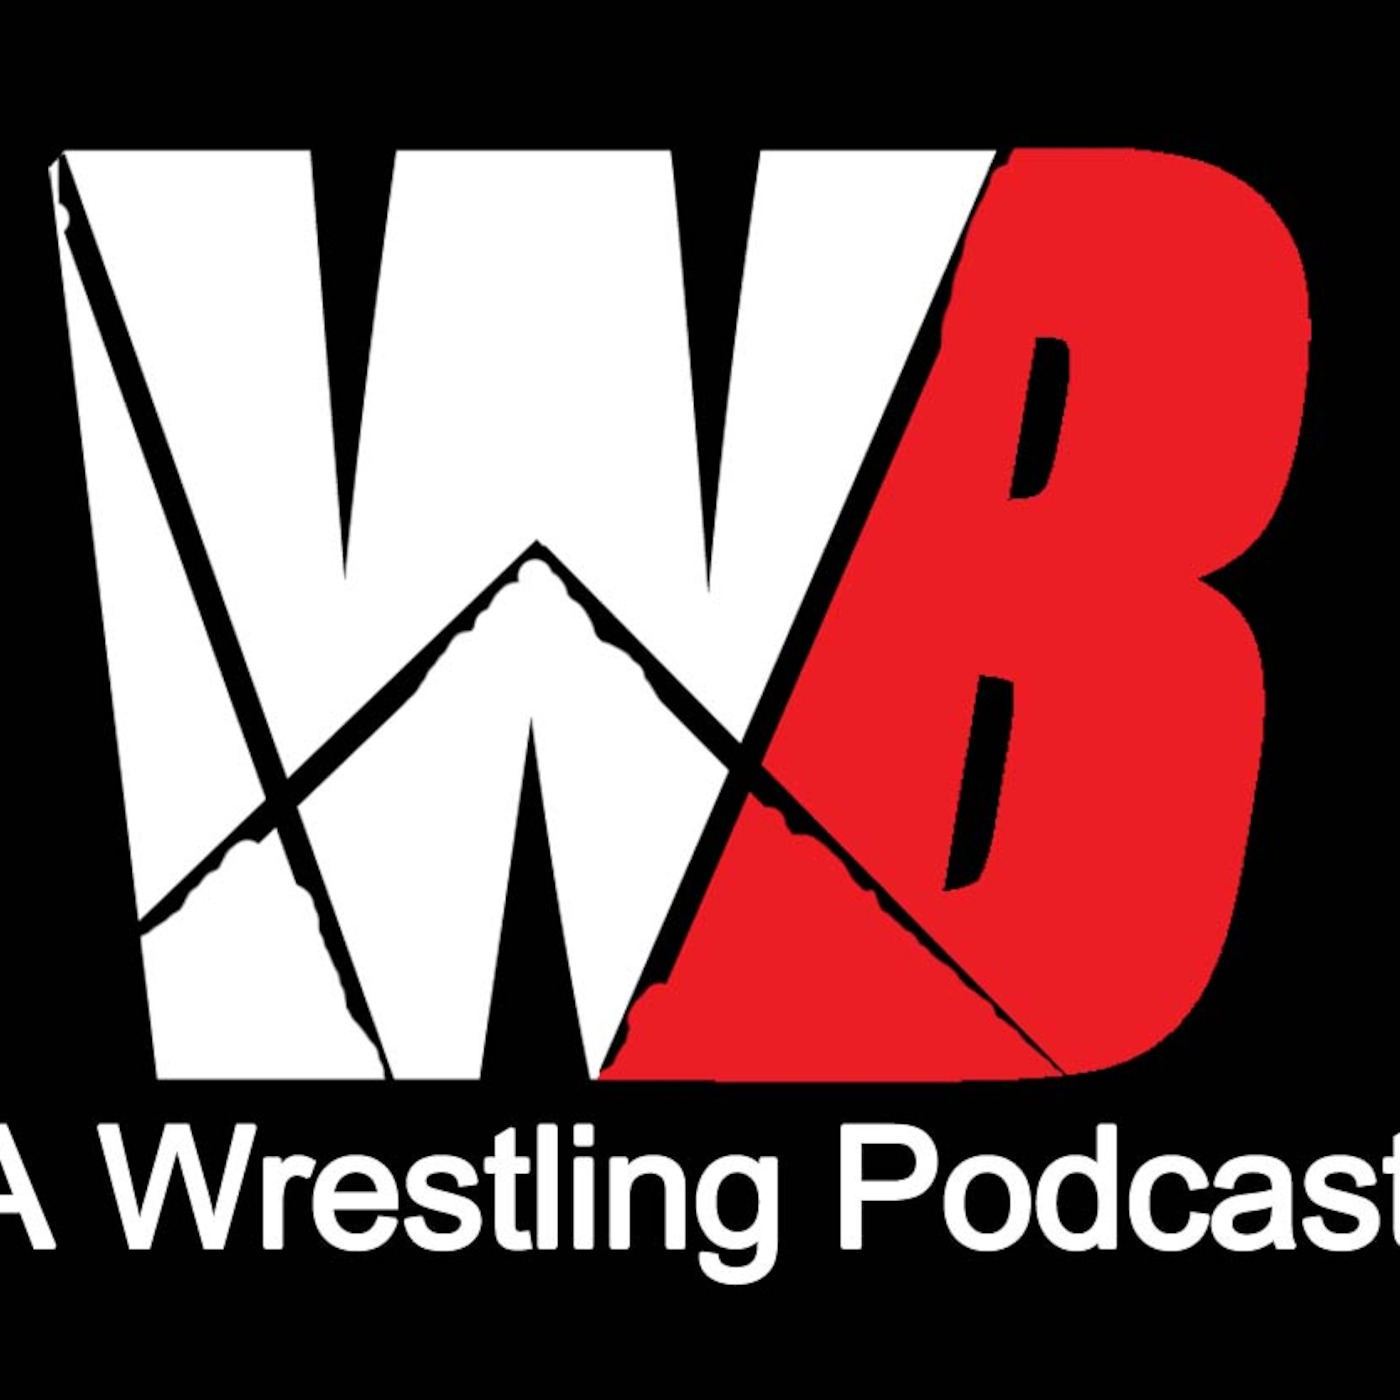 We Want Blood: A Wrestling Podcast